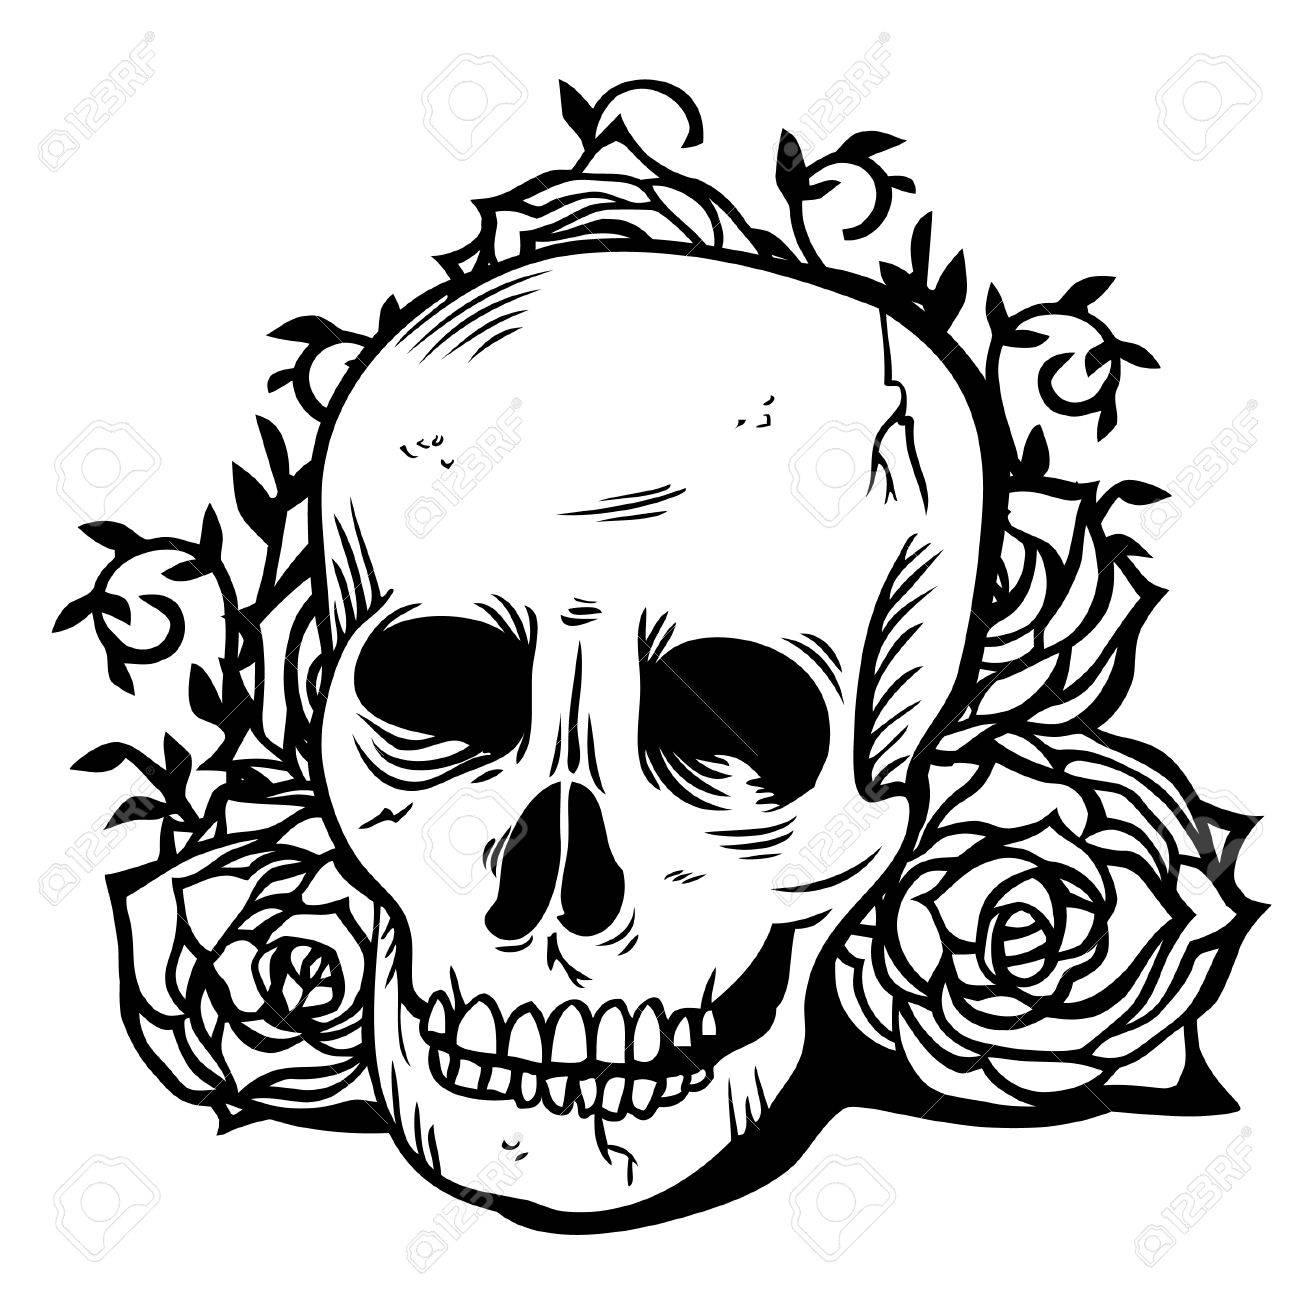 004b674fc8 A illustration of dark Gothic skull and flowers. The illustration is in  black and white color scheme and done in ink tattoo style.